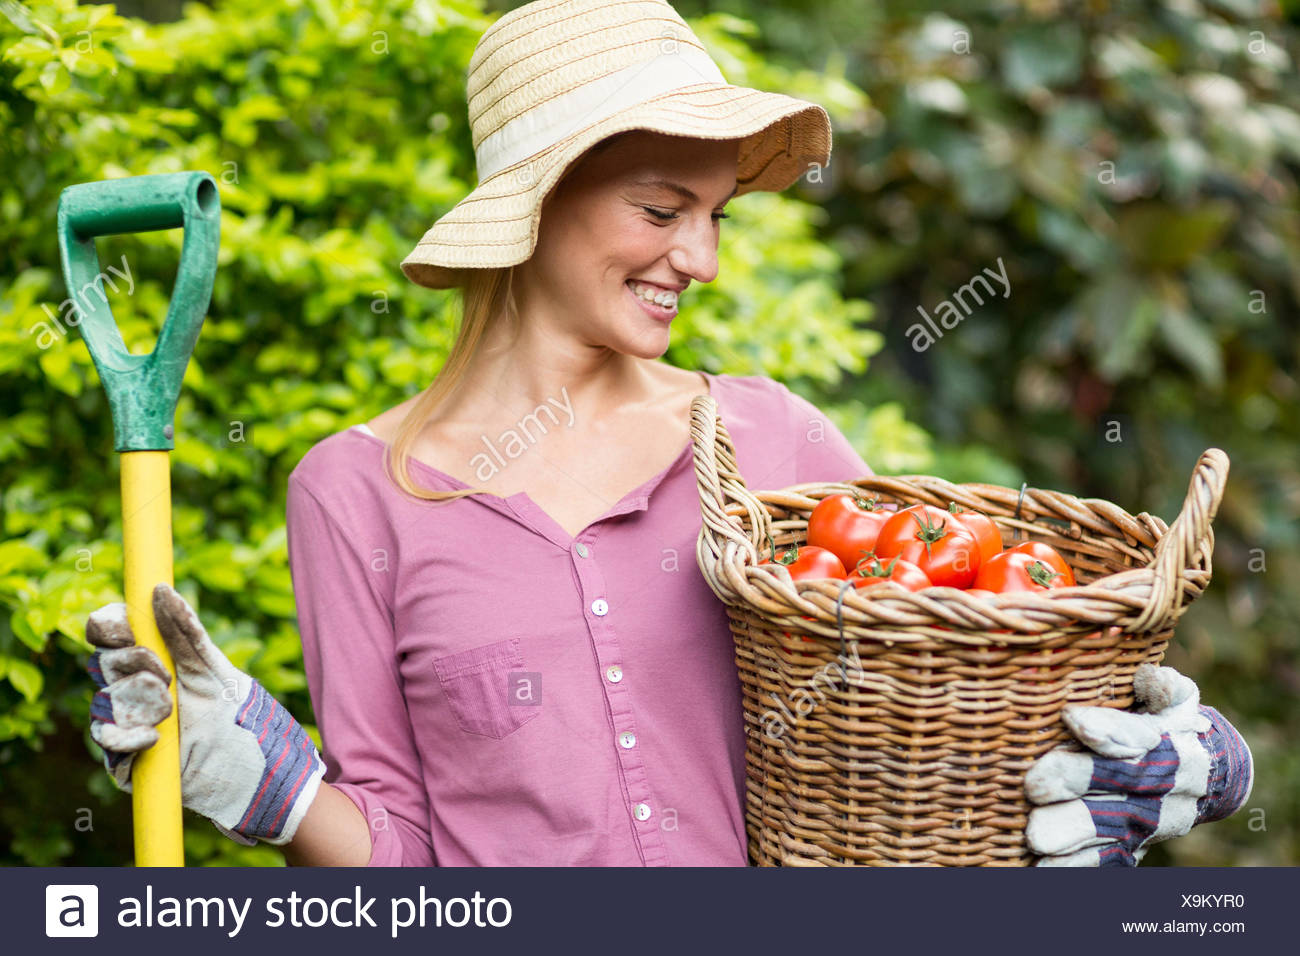 Happy gardener holding tomato basket and work tool - Stock Image